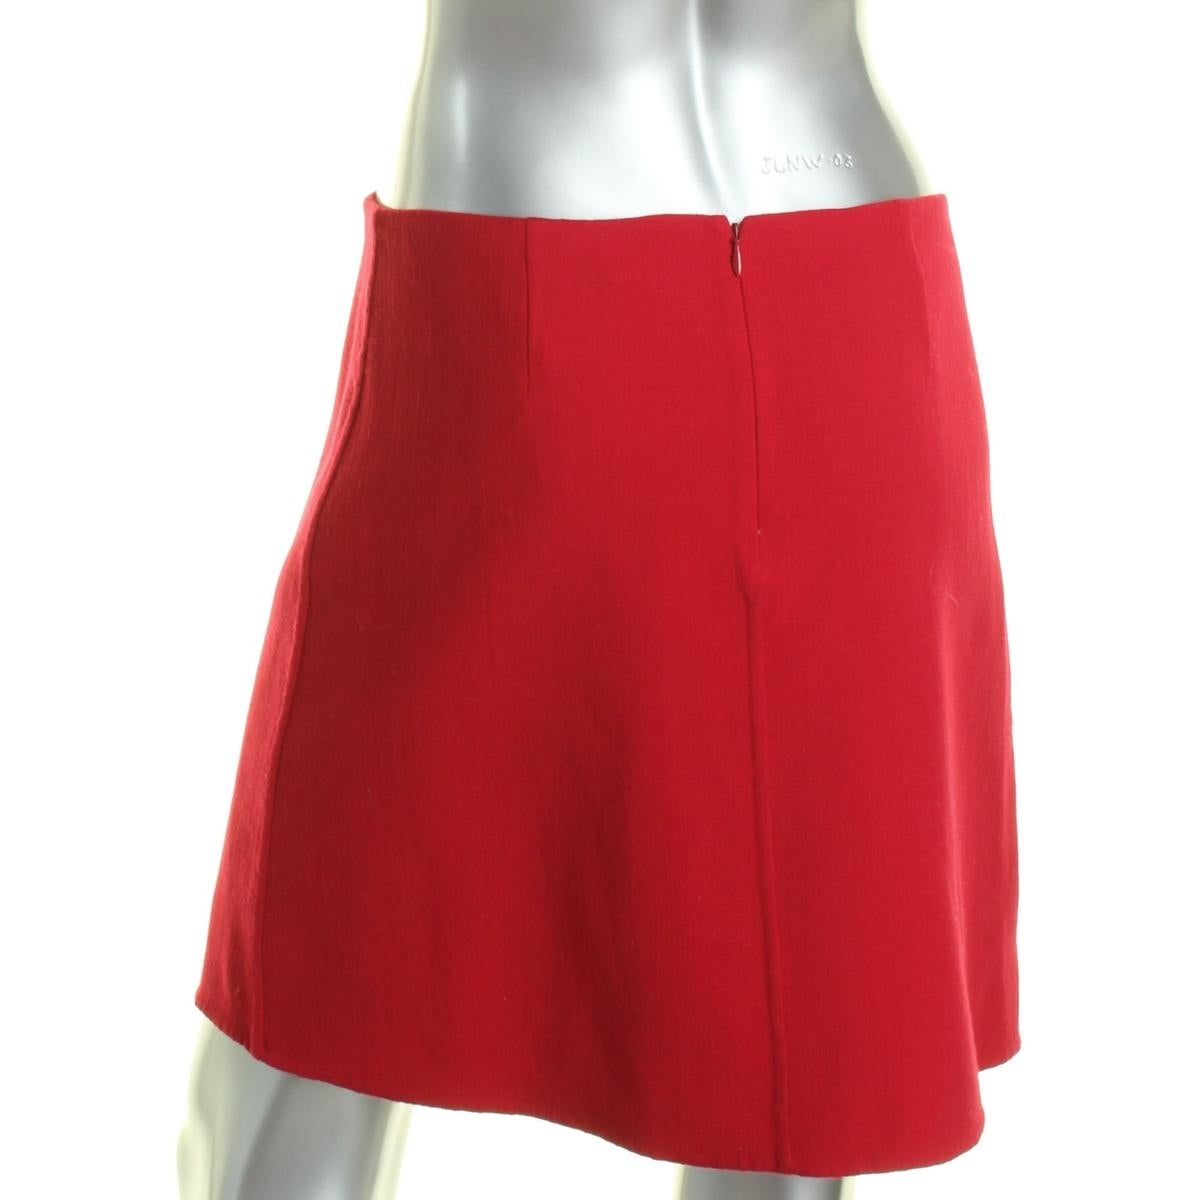 27be94ea98 Shop Theory Womens Irenah Saxton A-Line Skirt Virgin Wool Above Knee - Free  Shipping Today - Overstock.com - 17084388